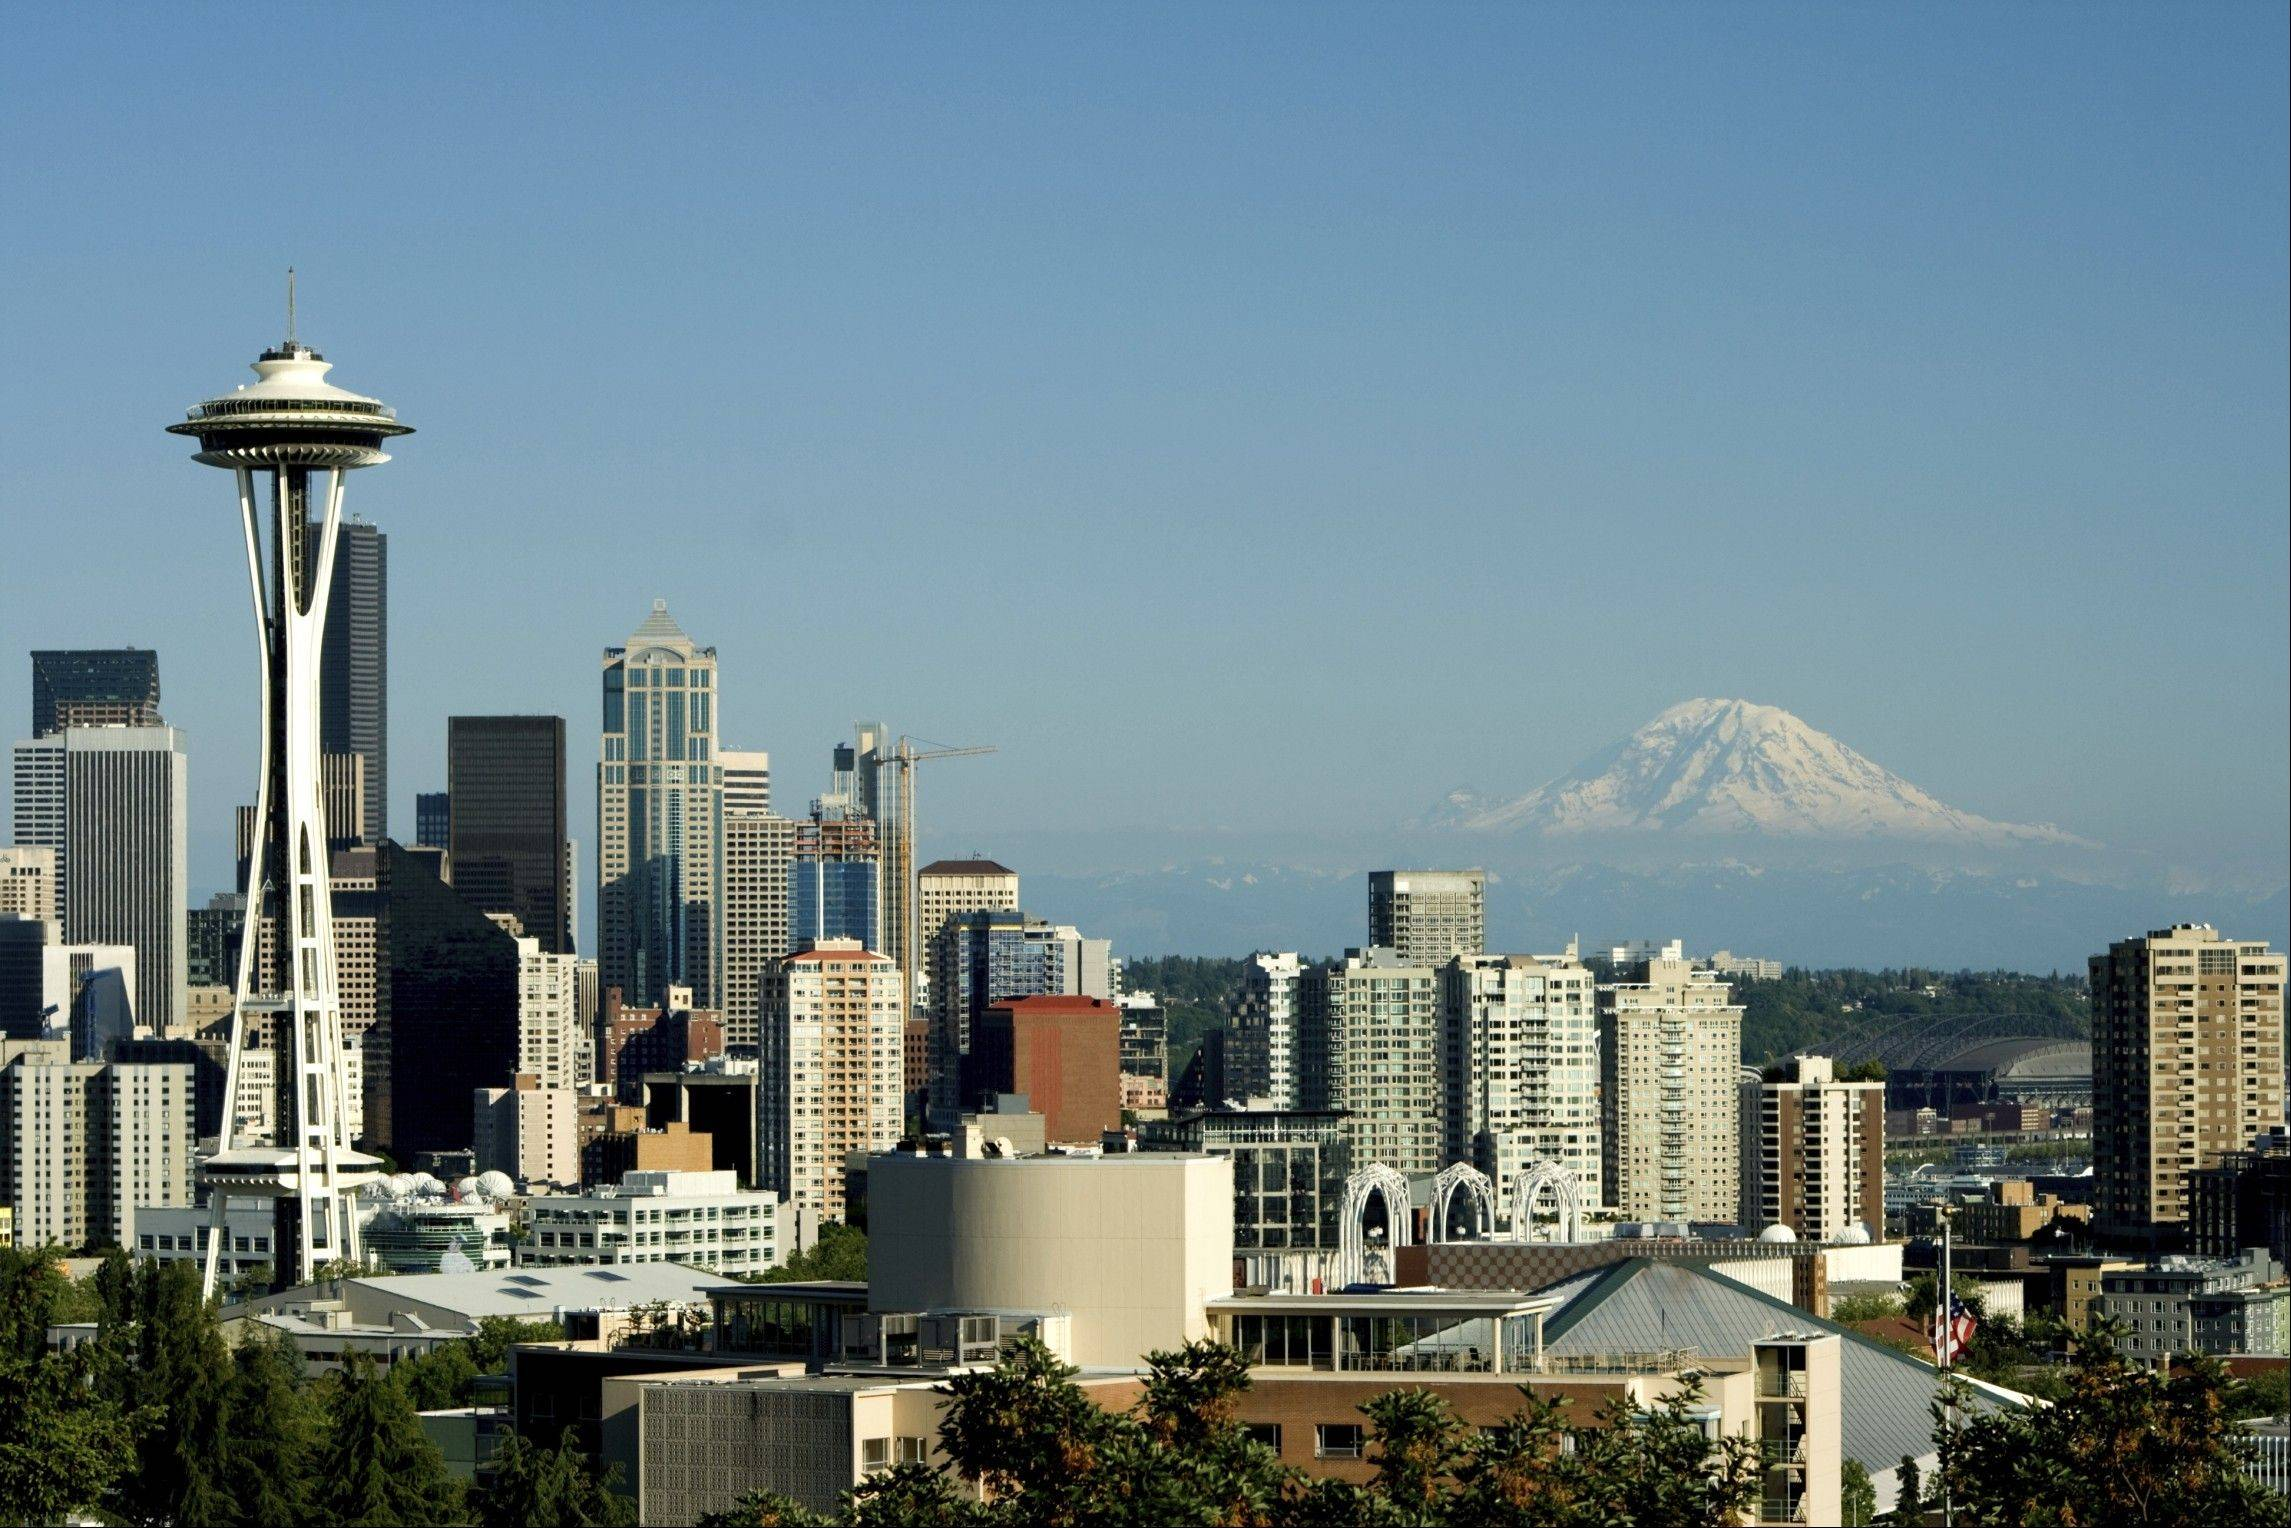 The U.S.'s richest retirees are spurning Florida's sun in favor of Seattle's rain .